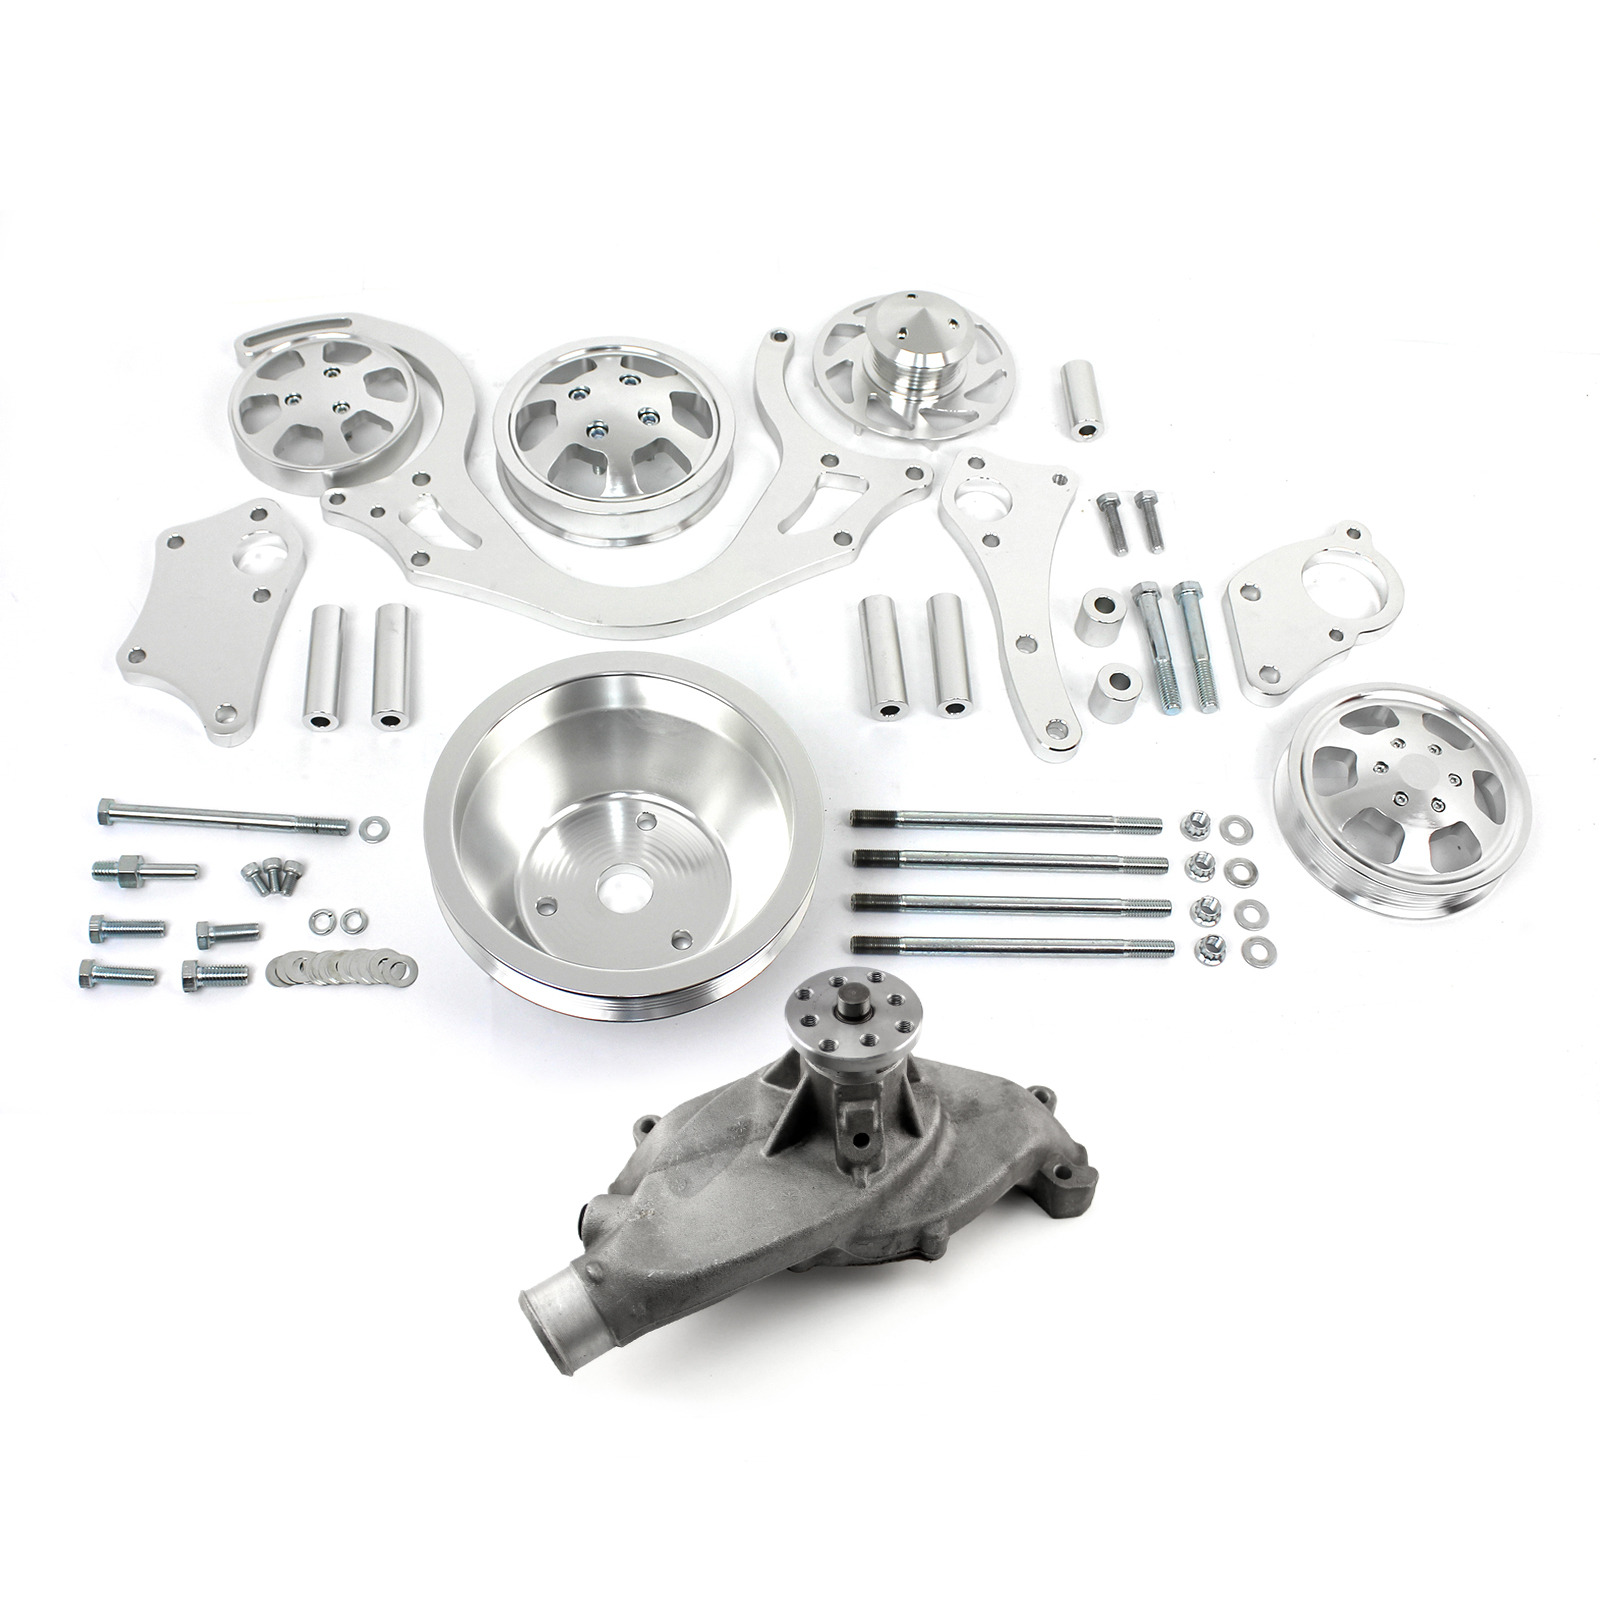 Serpentine Belt Pulley Groove Dimensions : Chevy bbc polished aluminum serpentine engine pulley short water pump kit